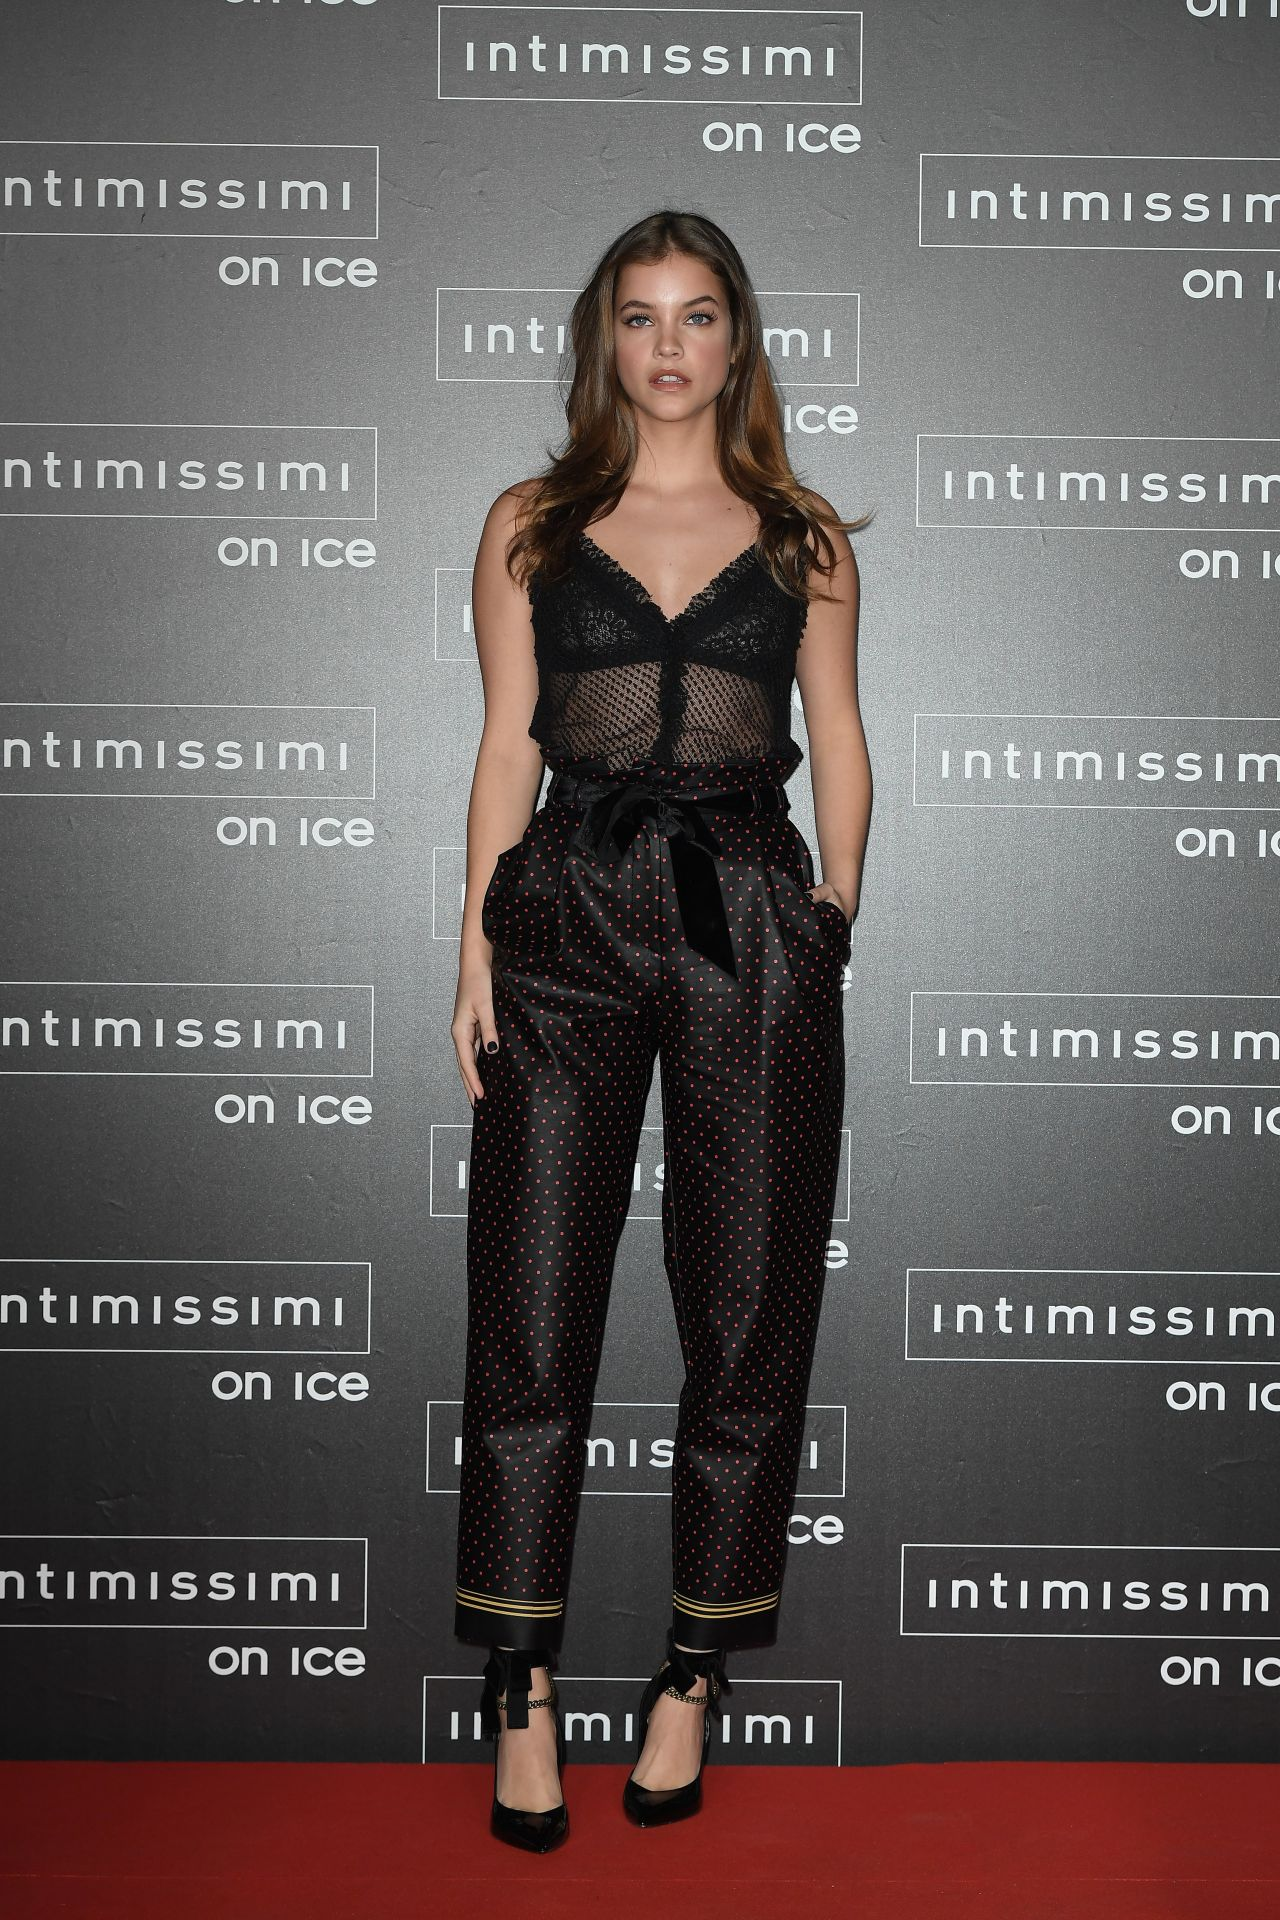 Barbara Palvin Intimissimi On Ice At Arena In Verona